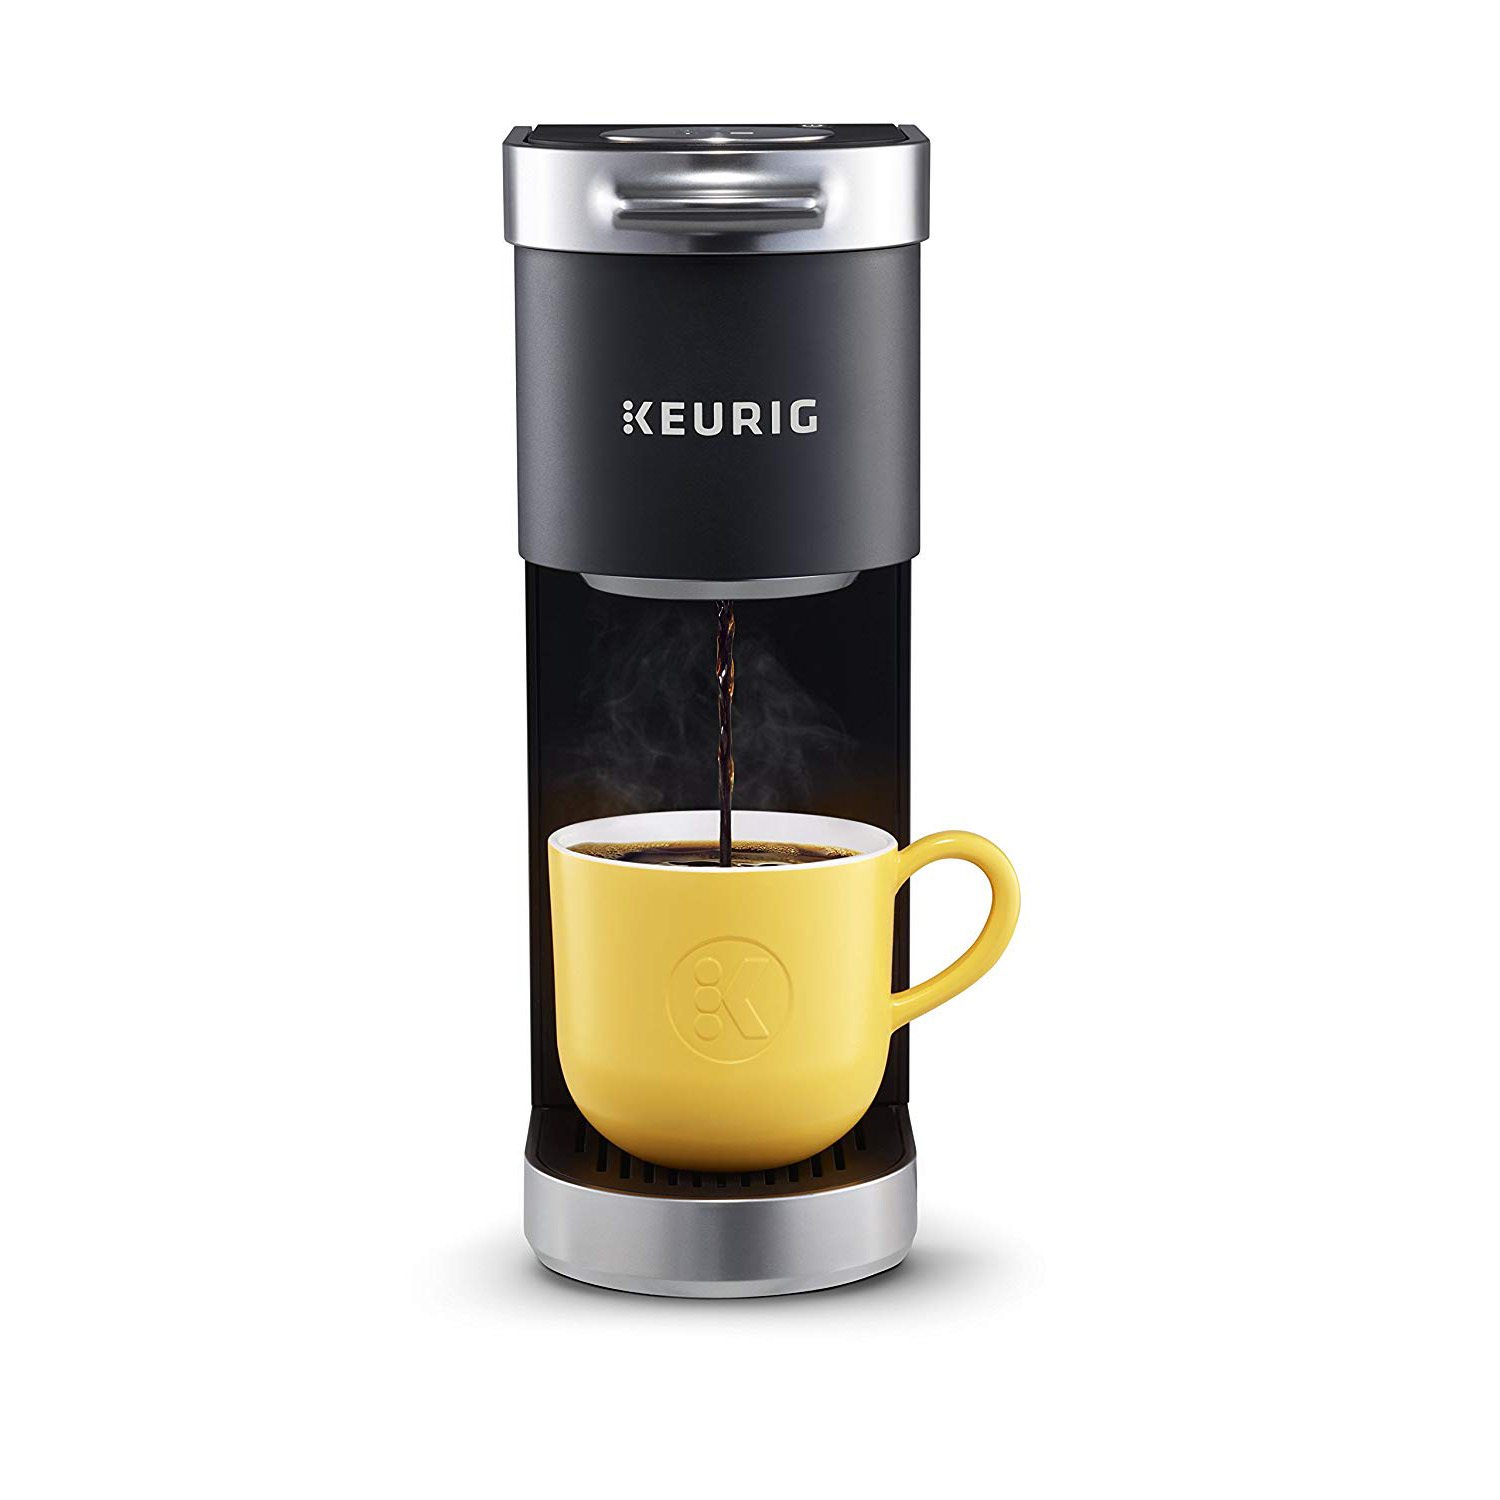 Keurig Single Serve Coffee Maker